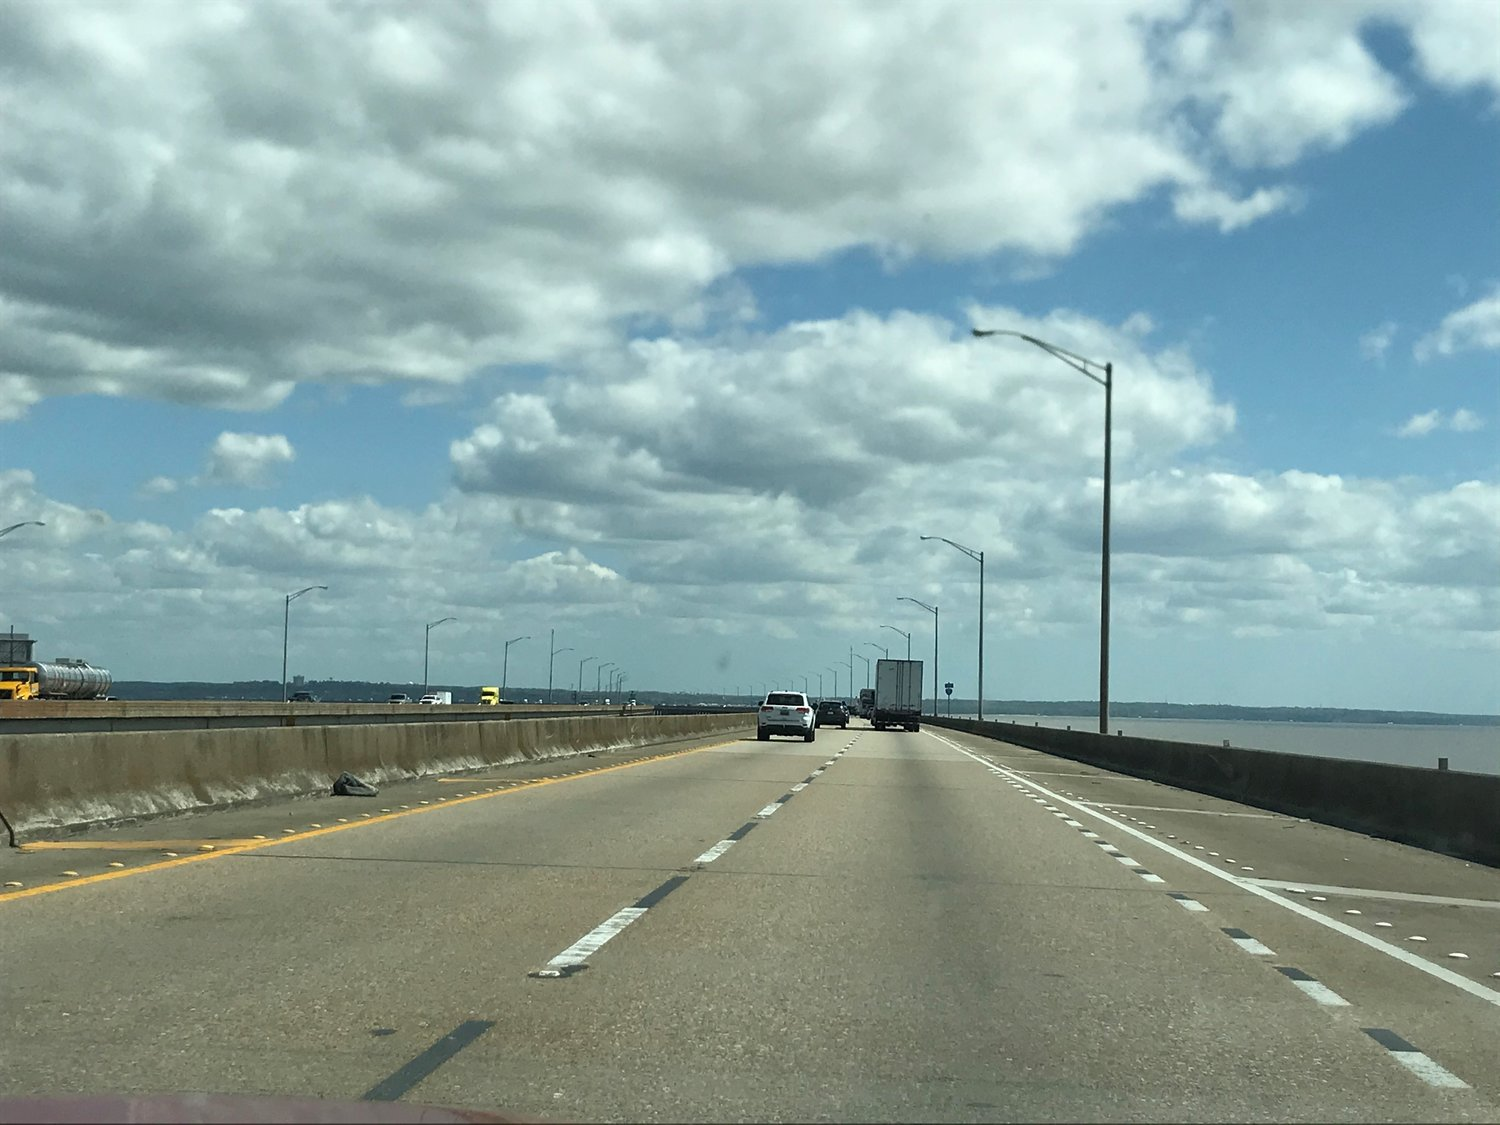 A new proposal for reducing congestion on the Interstate 10 Bayway would have the highway restriped to add a third lane in each direction without modifying the structure.